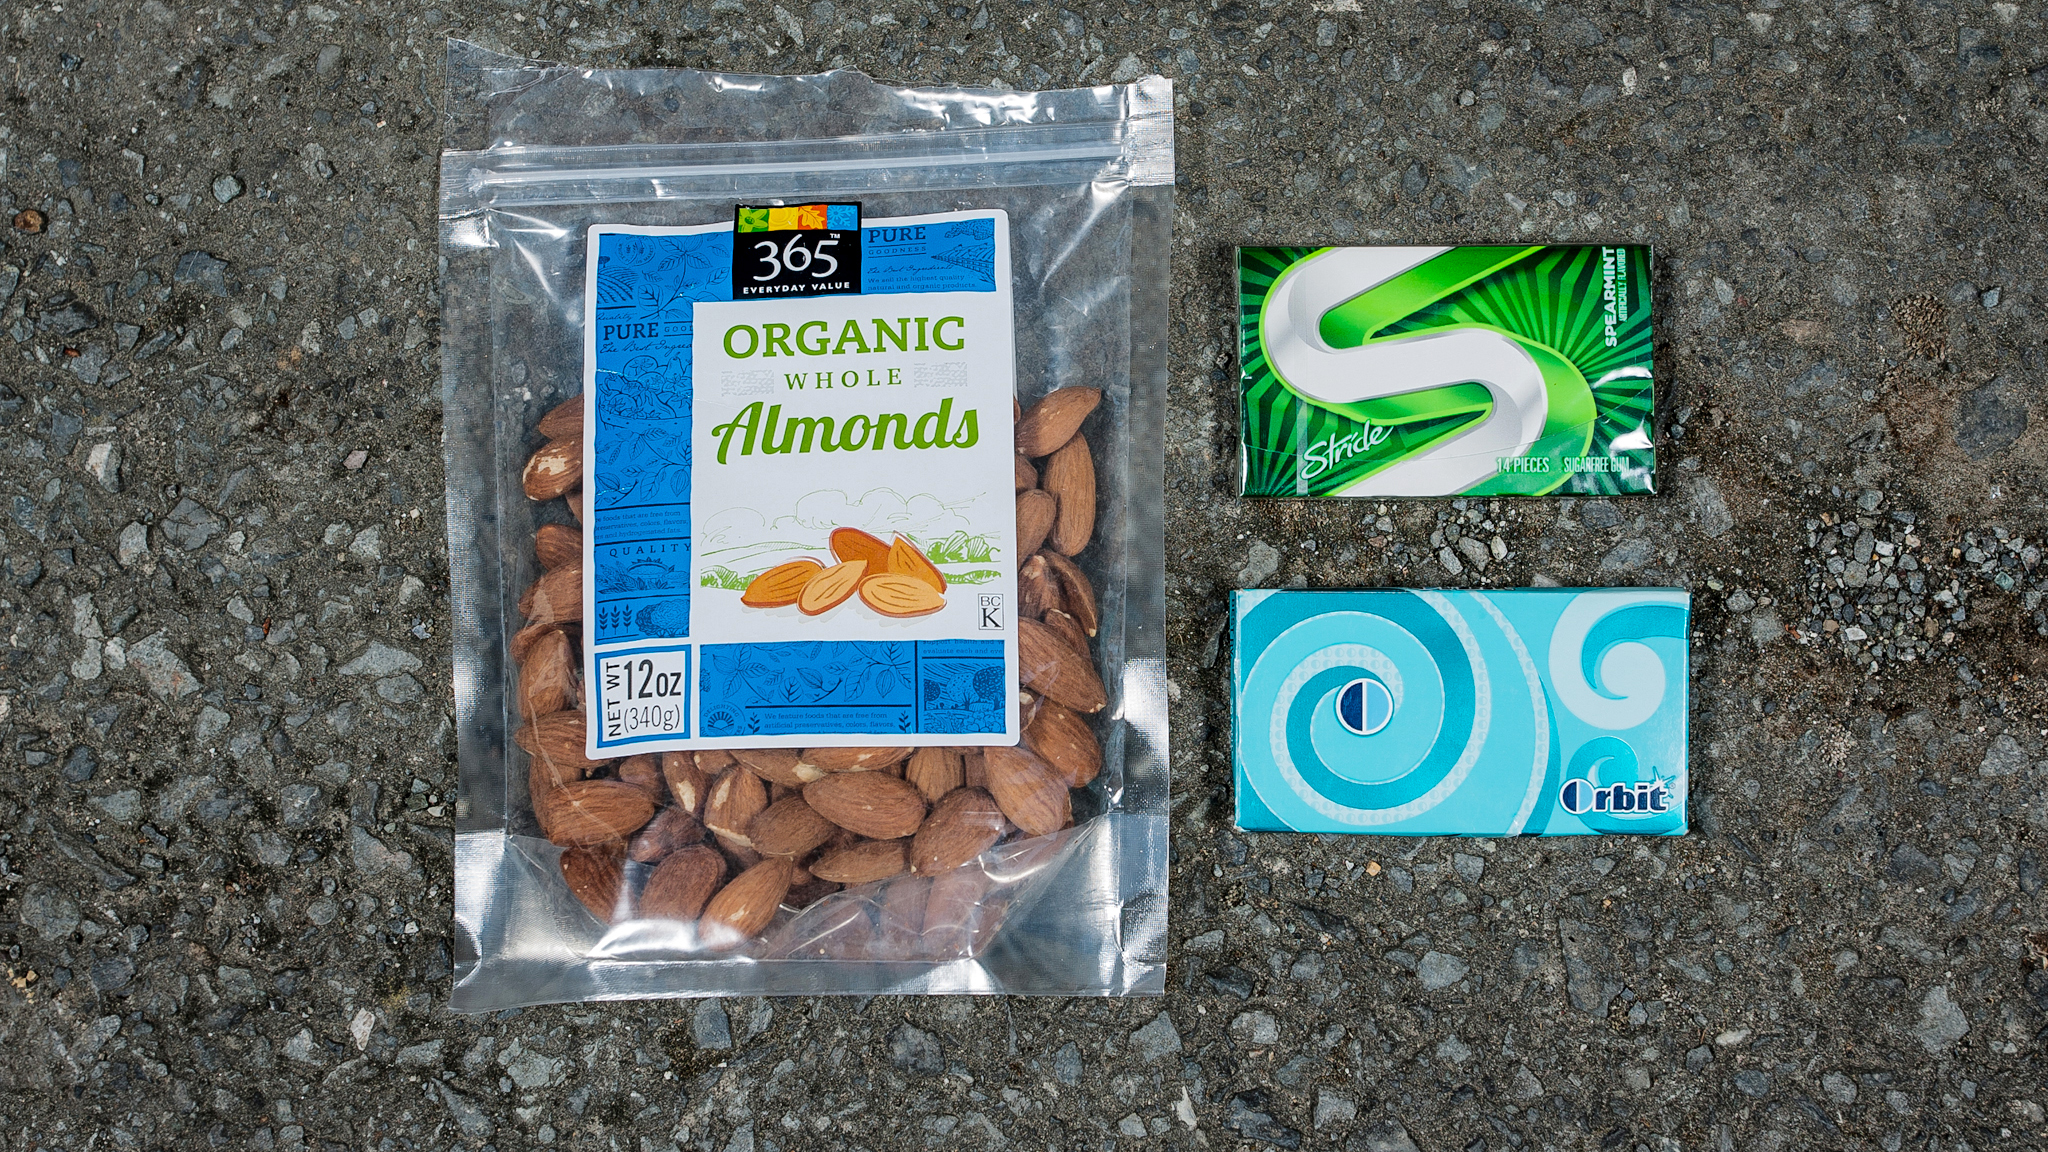 Almonds and gum